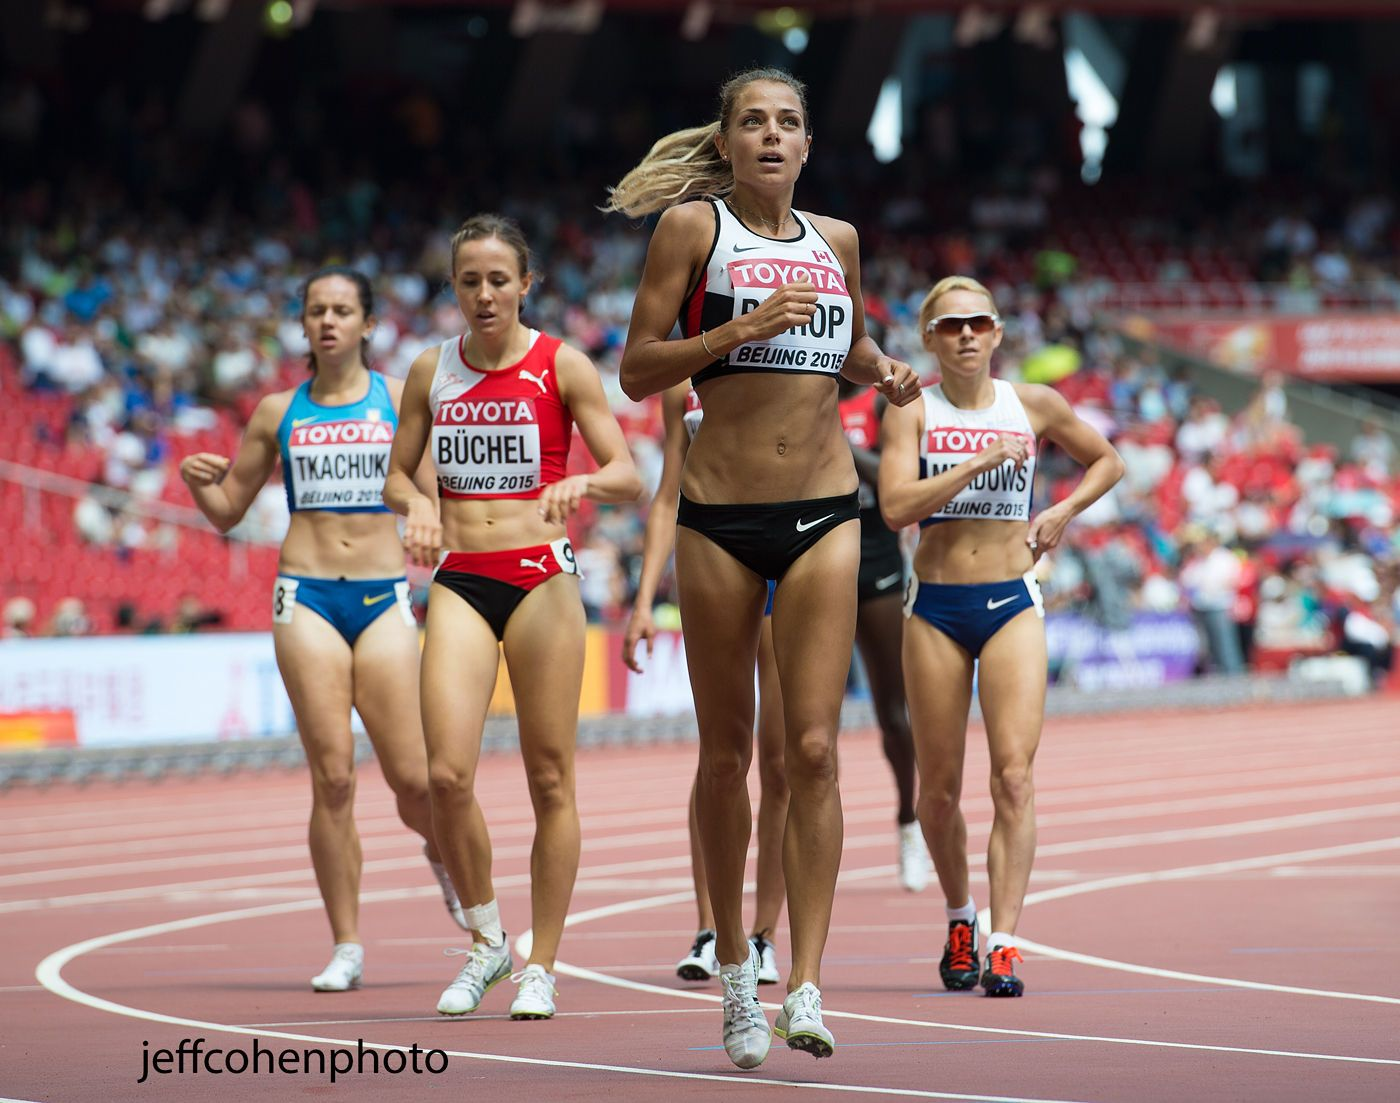 1beijing2015_day_5_bishop_800w_heat_jeff_cohen_photo_18109_web.jpg